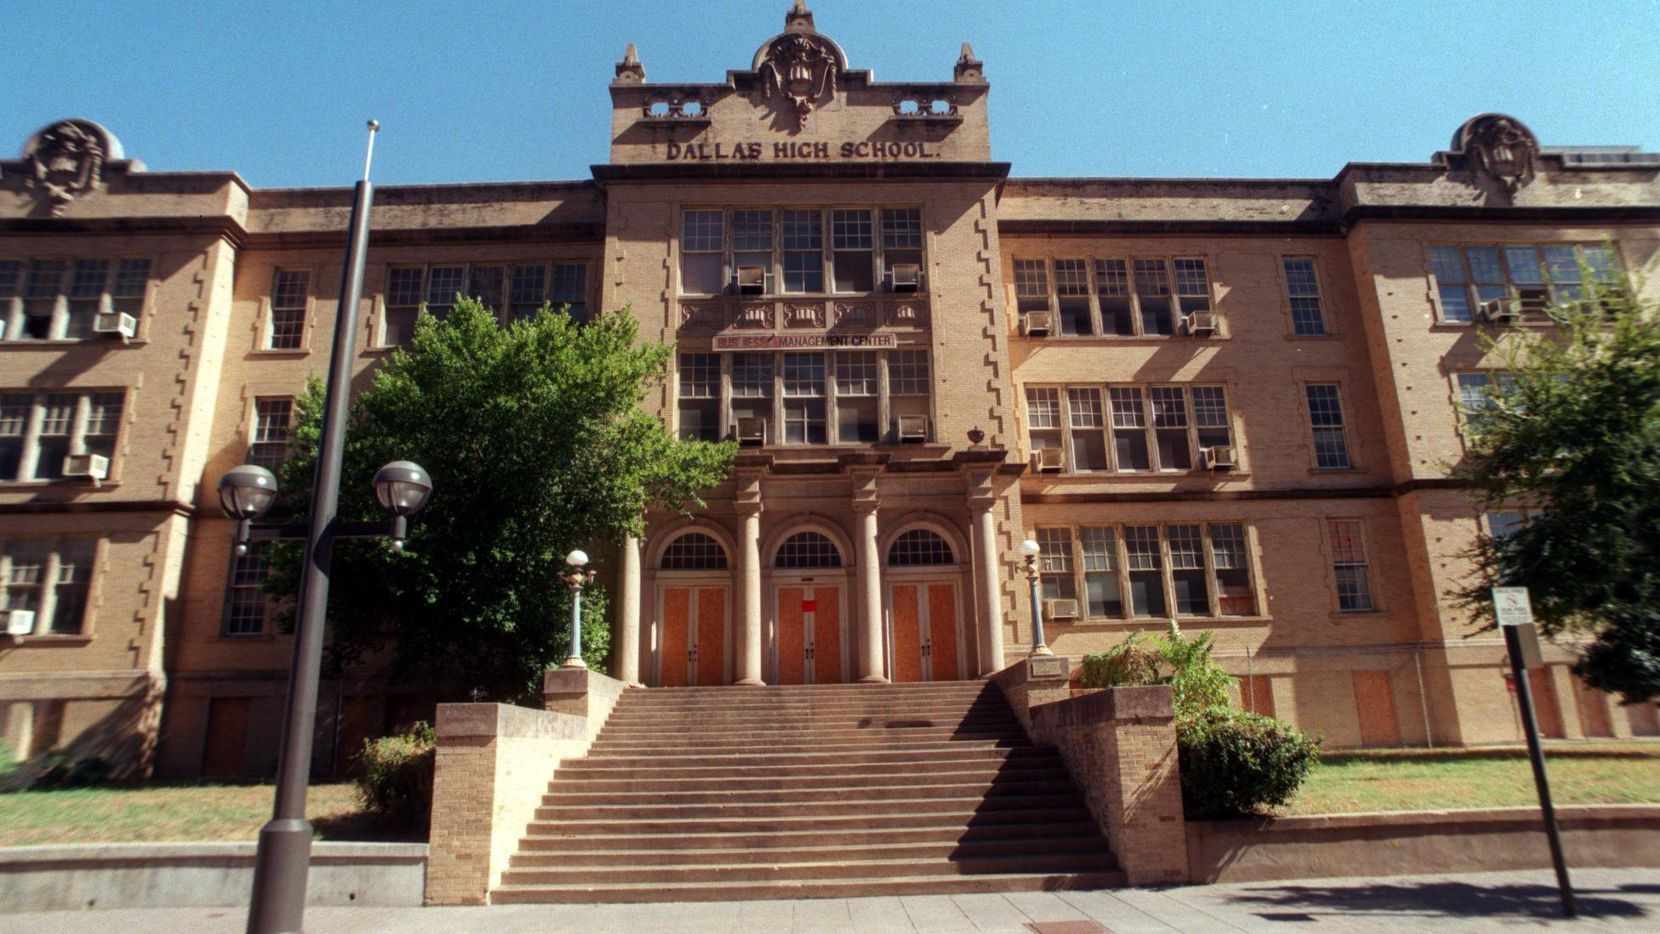 The old Dallas High School was built over 100 years ago and will be turned into an office and mixed-use project. (DMN files)